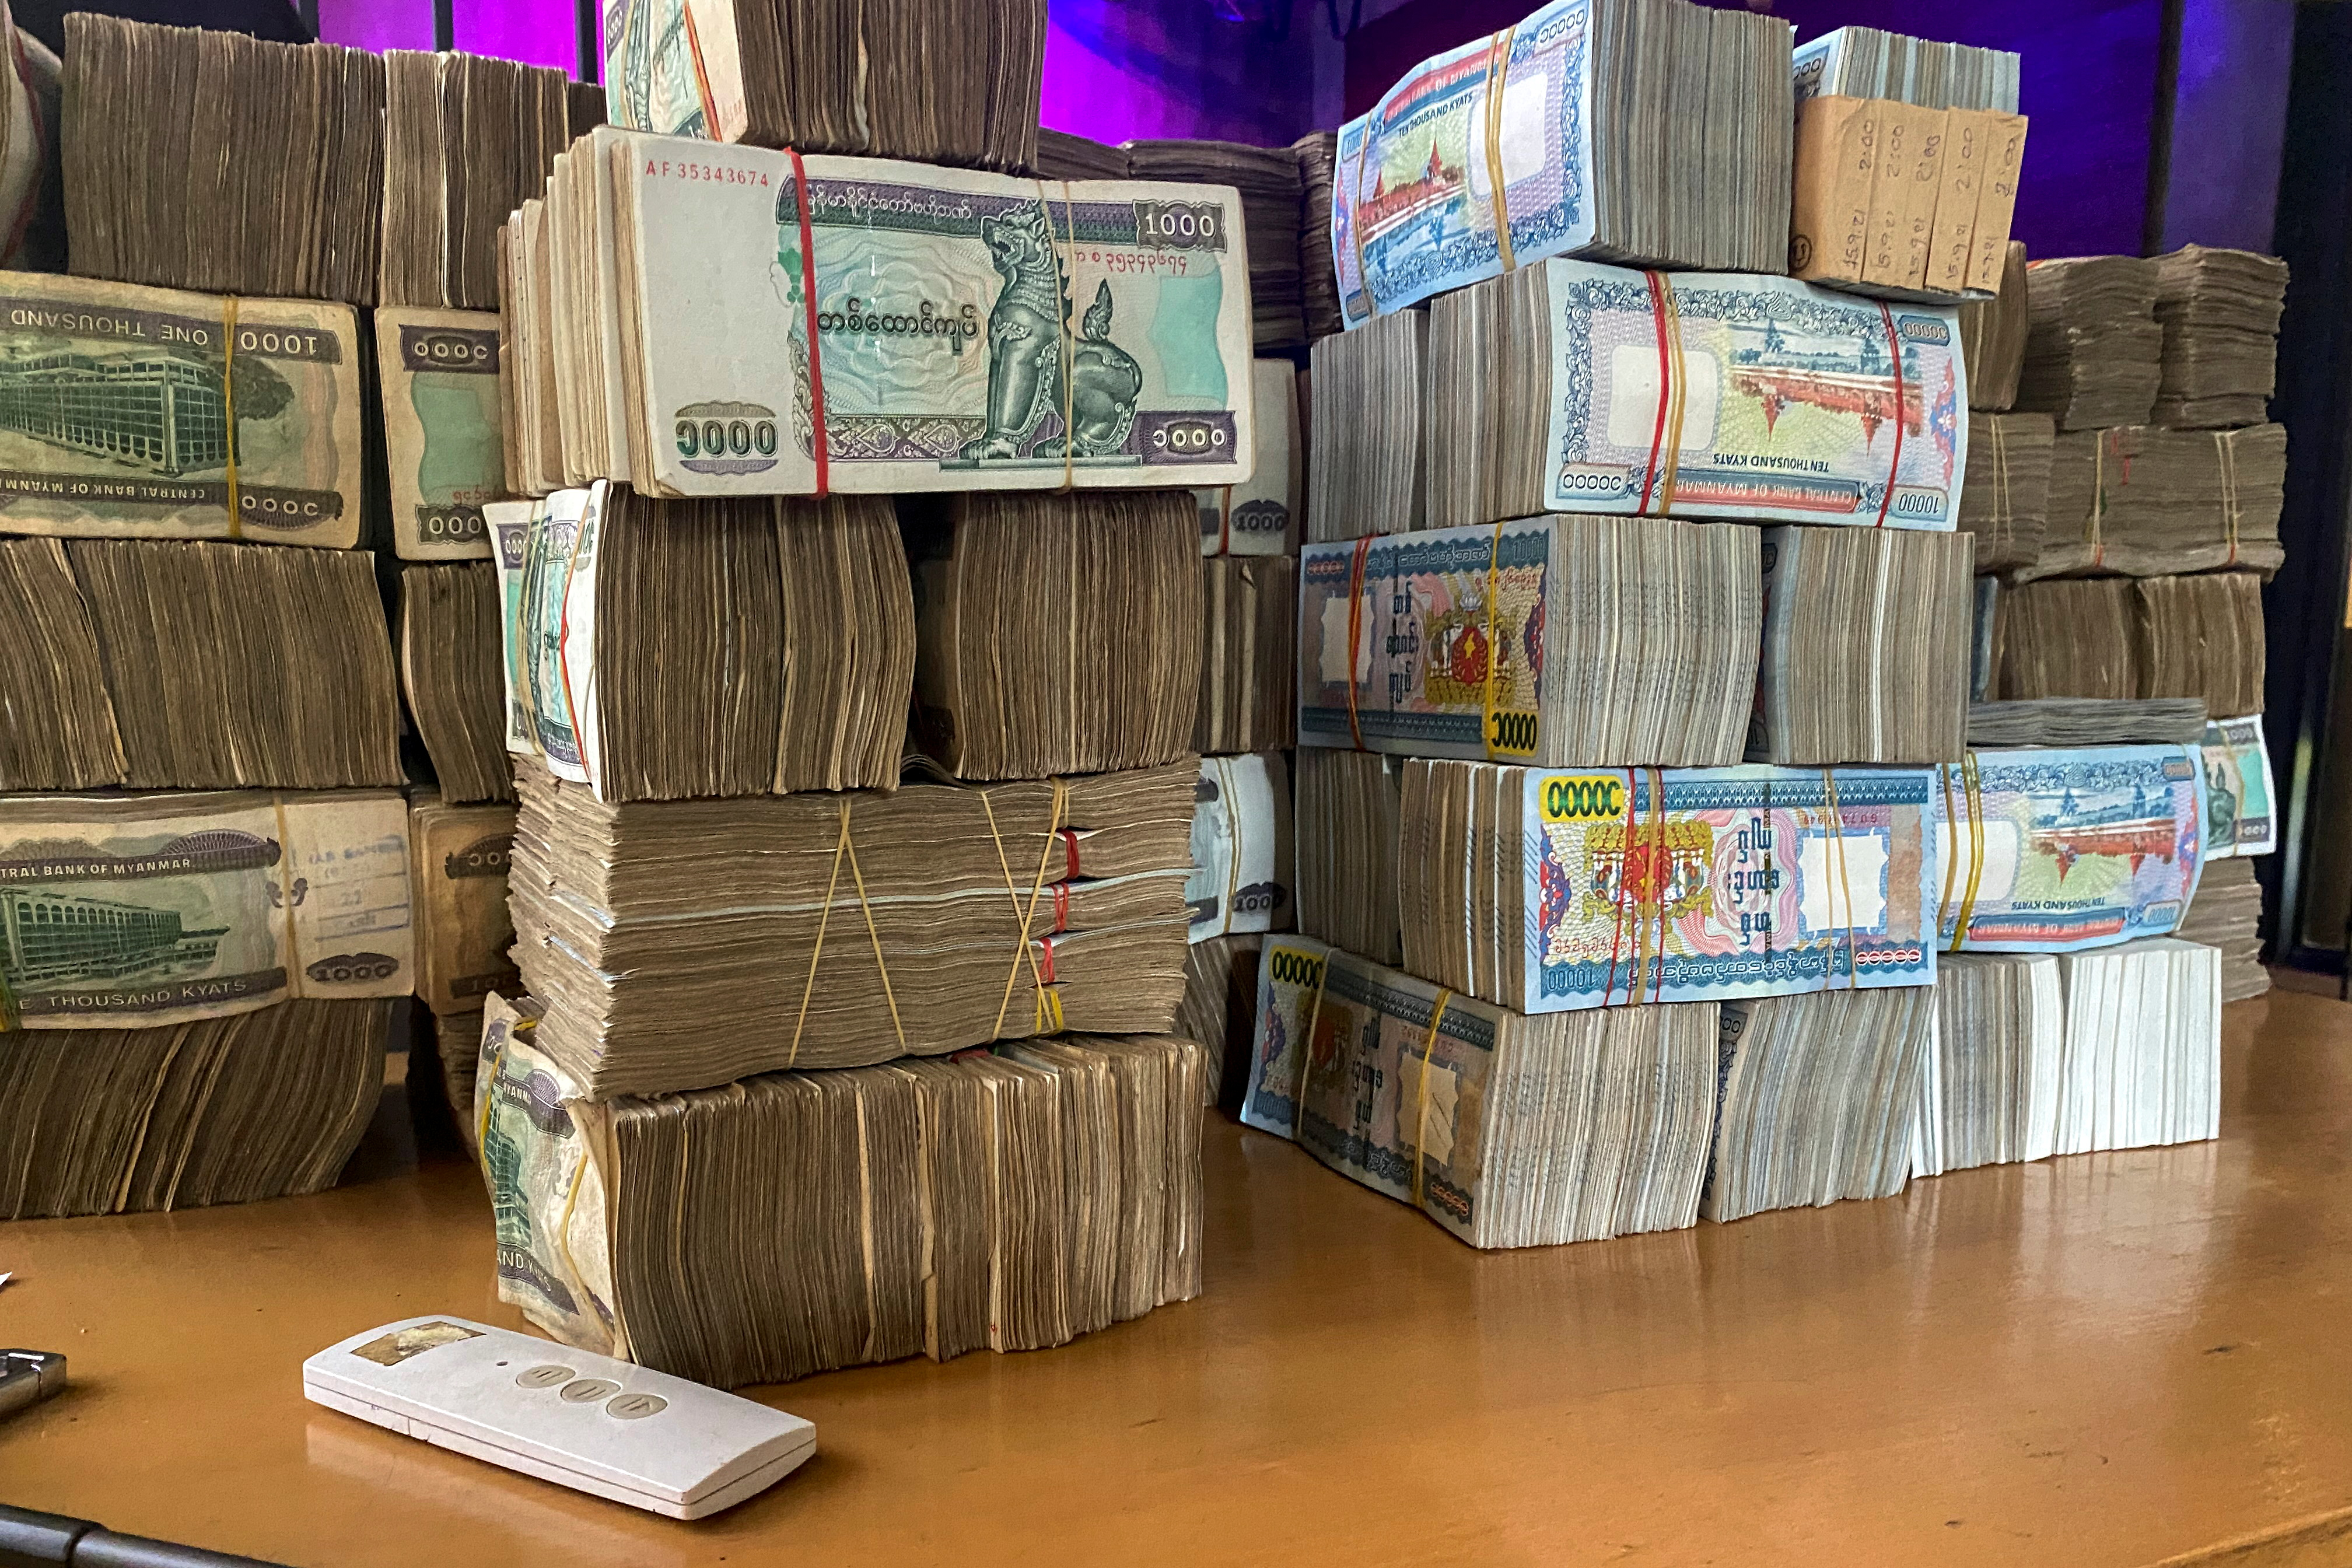 Myanmar banknotes are seen during an illegal exchange inside a house in Yangon, Myanmar, September 24, 2021. Picture taken September 24, 2021. REUTERS/Stringer